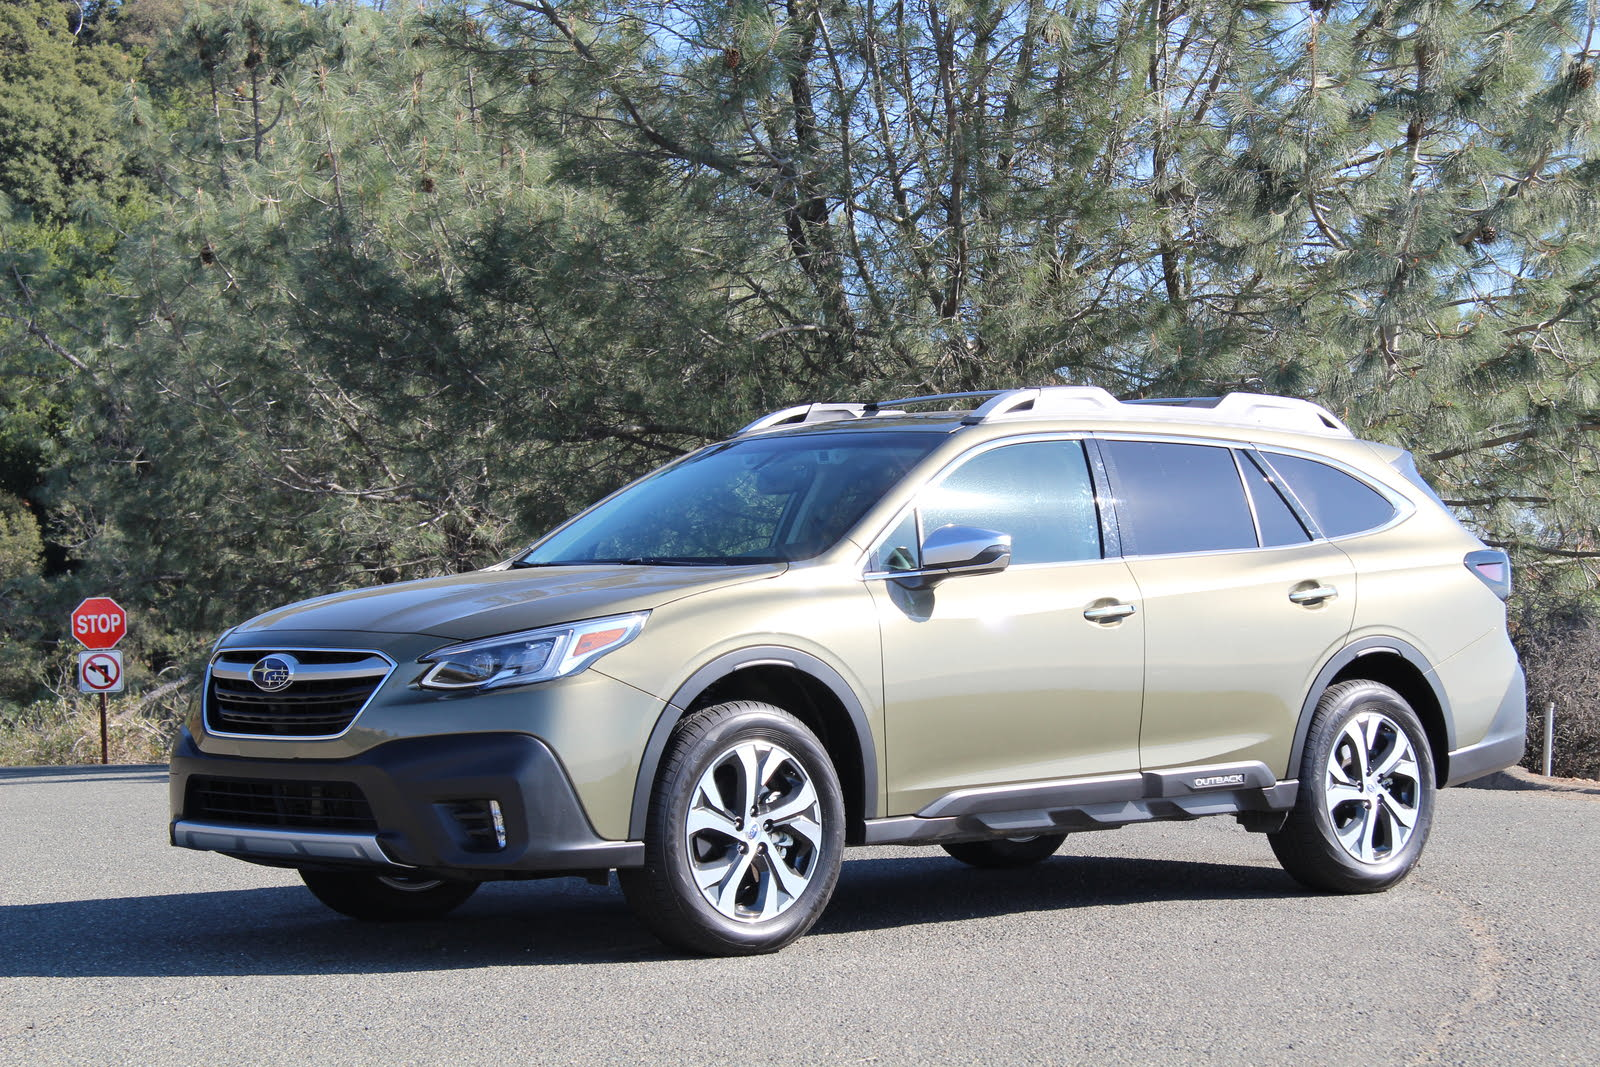 used subaru outback for sale in las cruces nm cargurus used subaru outback for sale in las